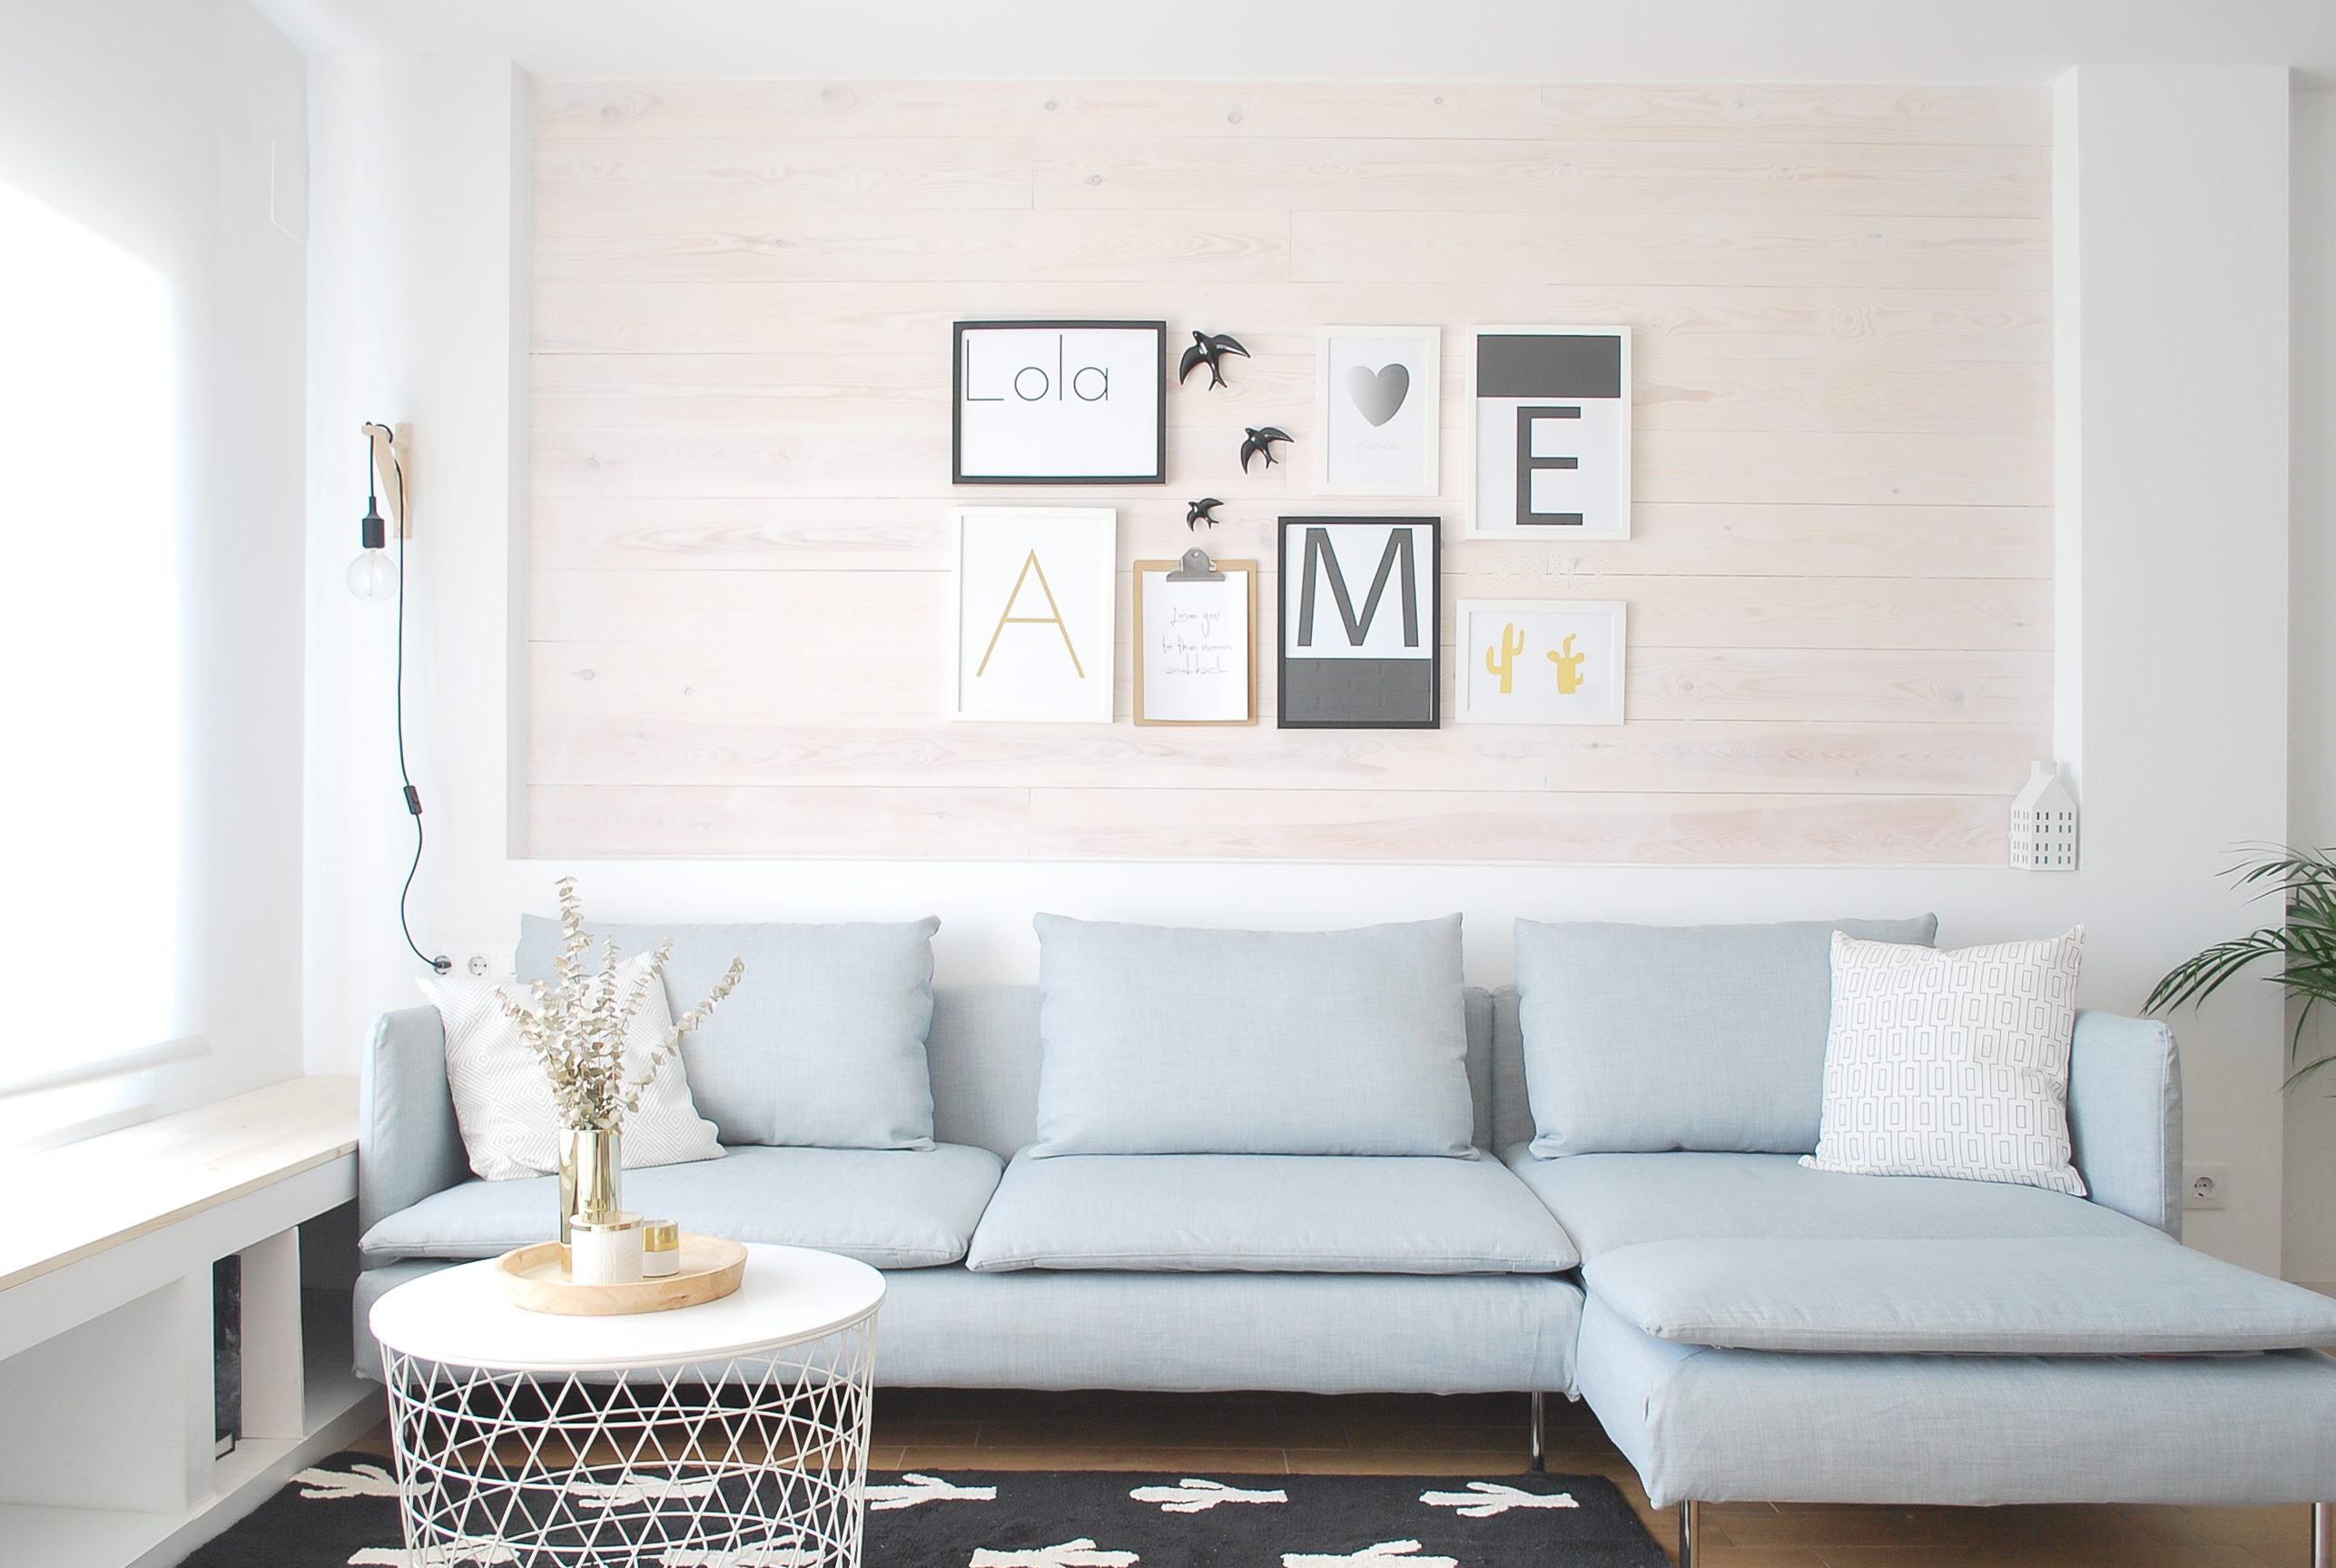 The Best Stain Removing Products For Your Sofa